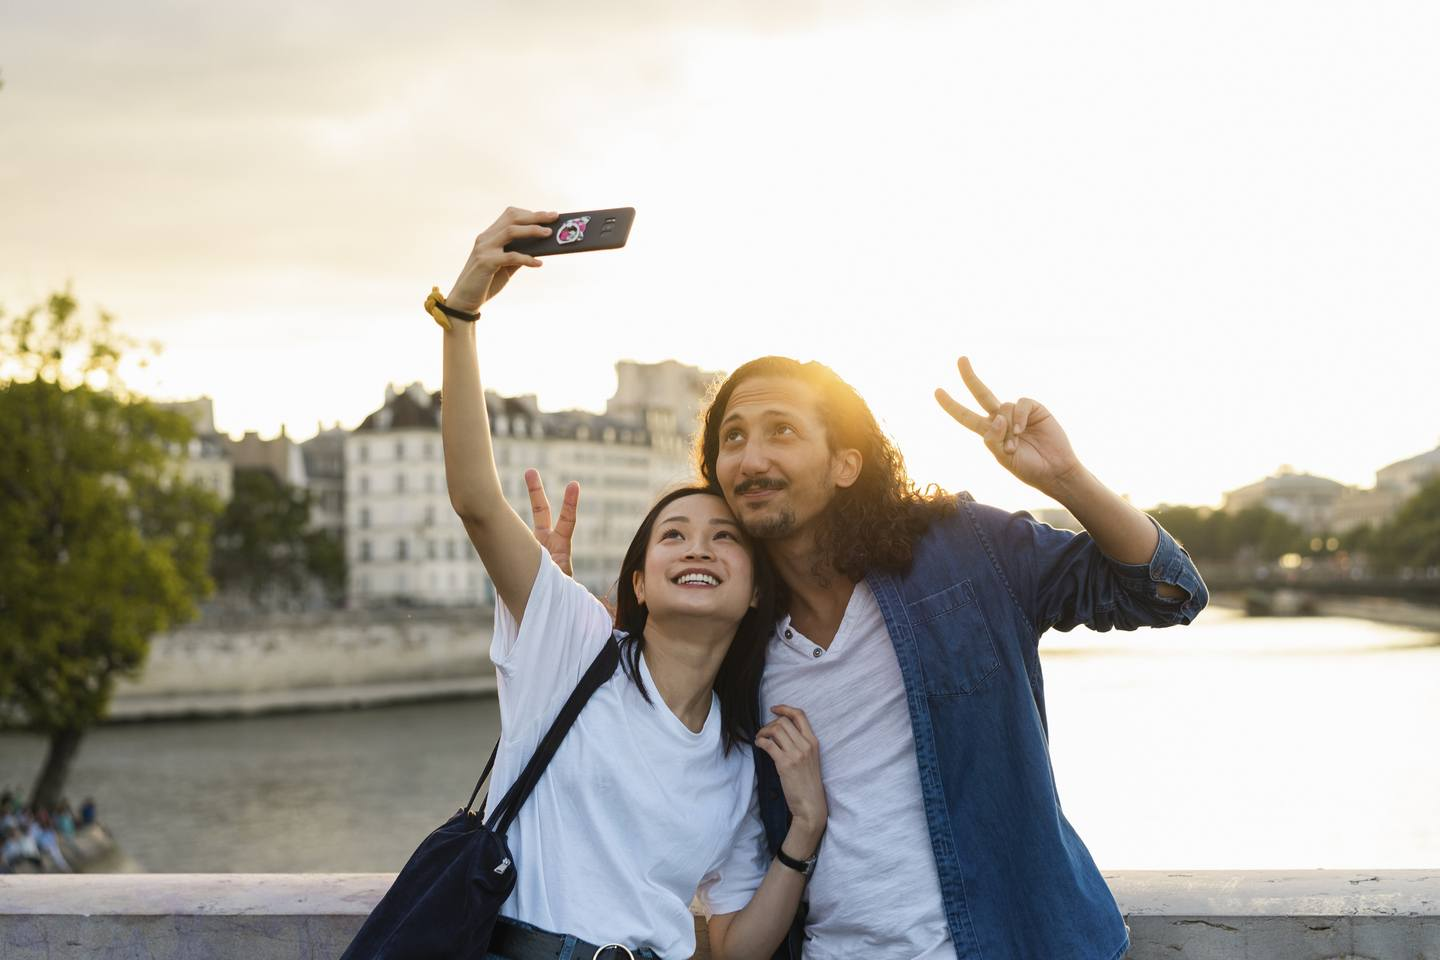 two people posing for a selfie on the bridge overlooking a river